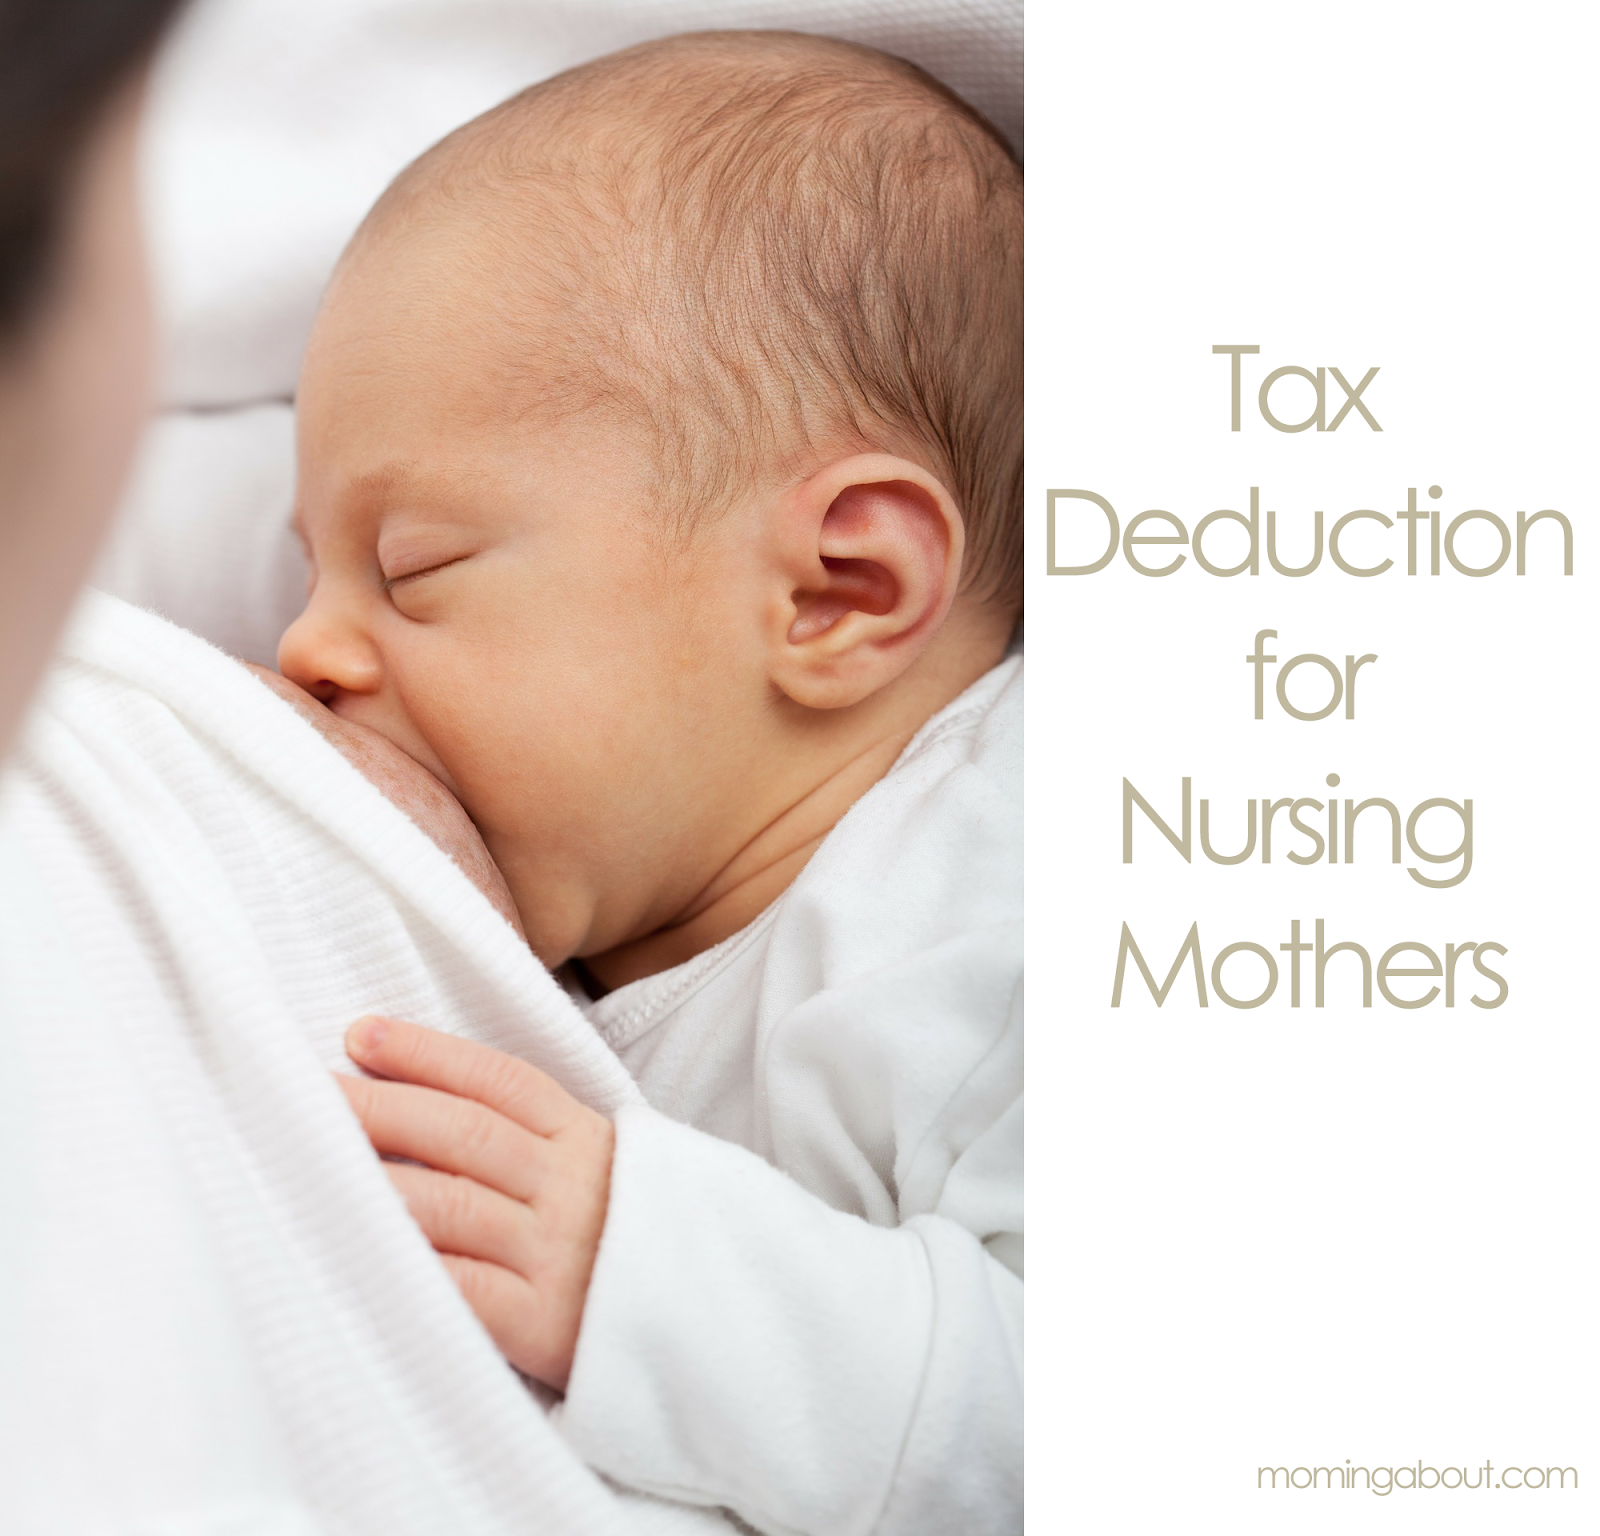 Breastfeeding Tax Deduction